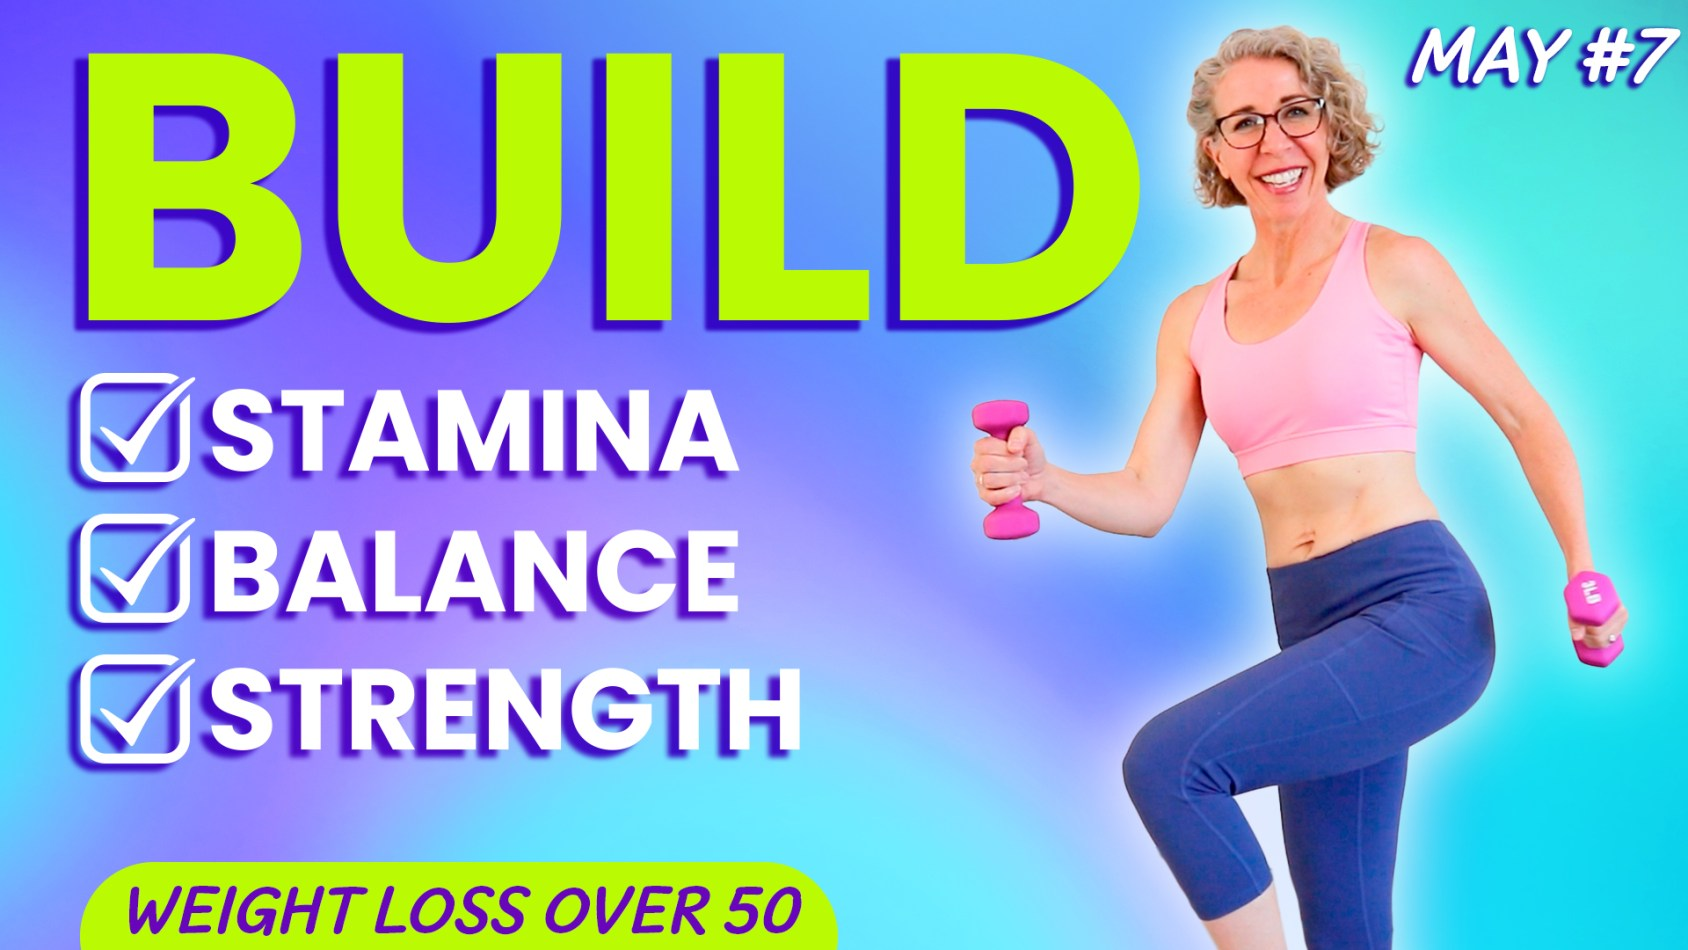 WALK with WEIGHTS, Fun TONING Workout for Women over 50 ???? MAY 7